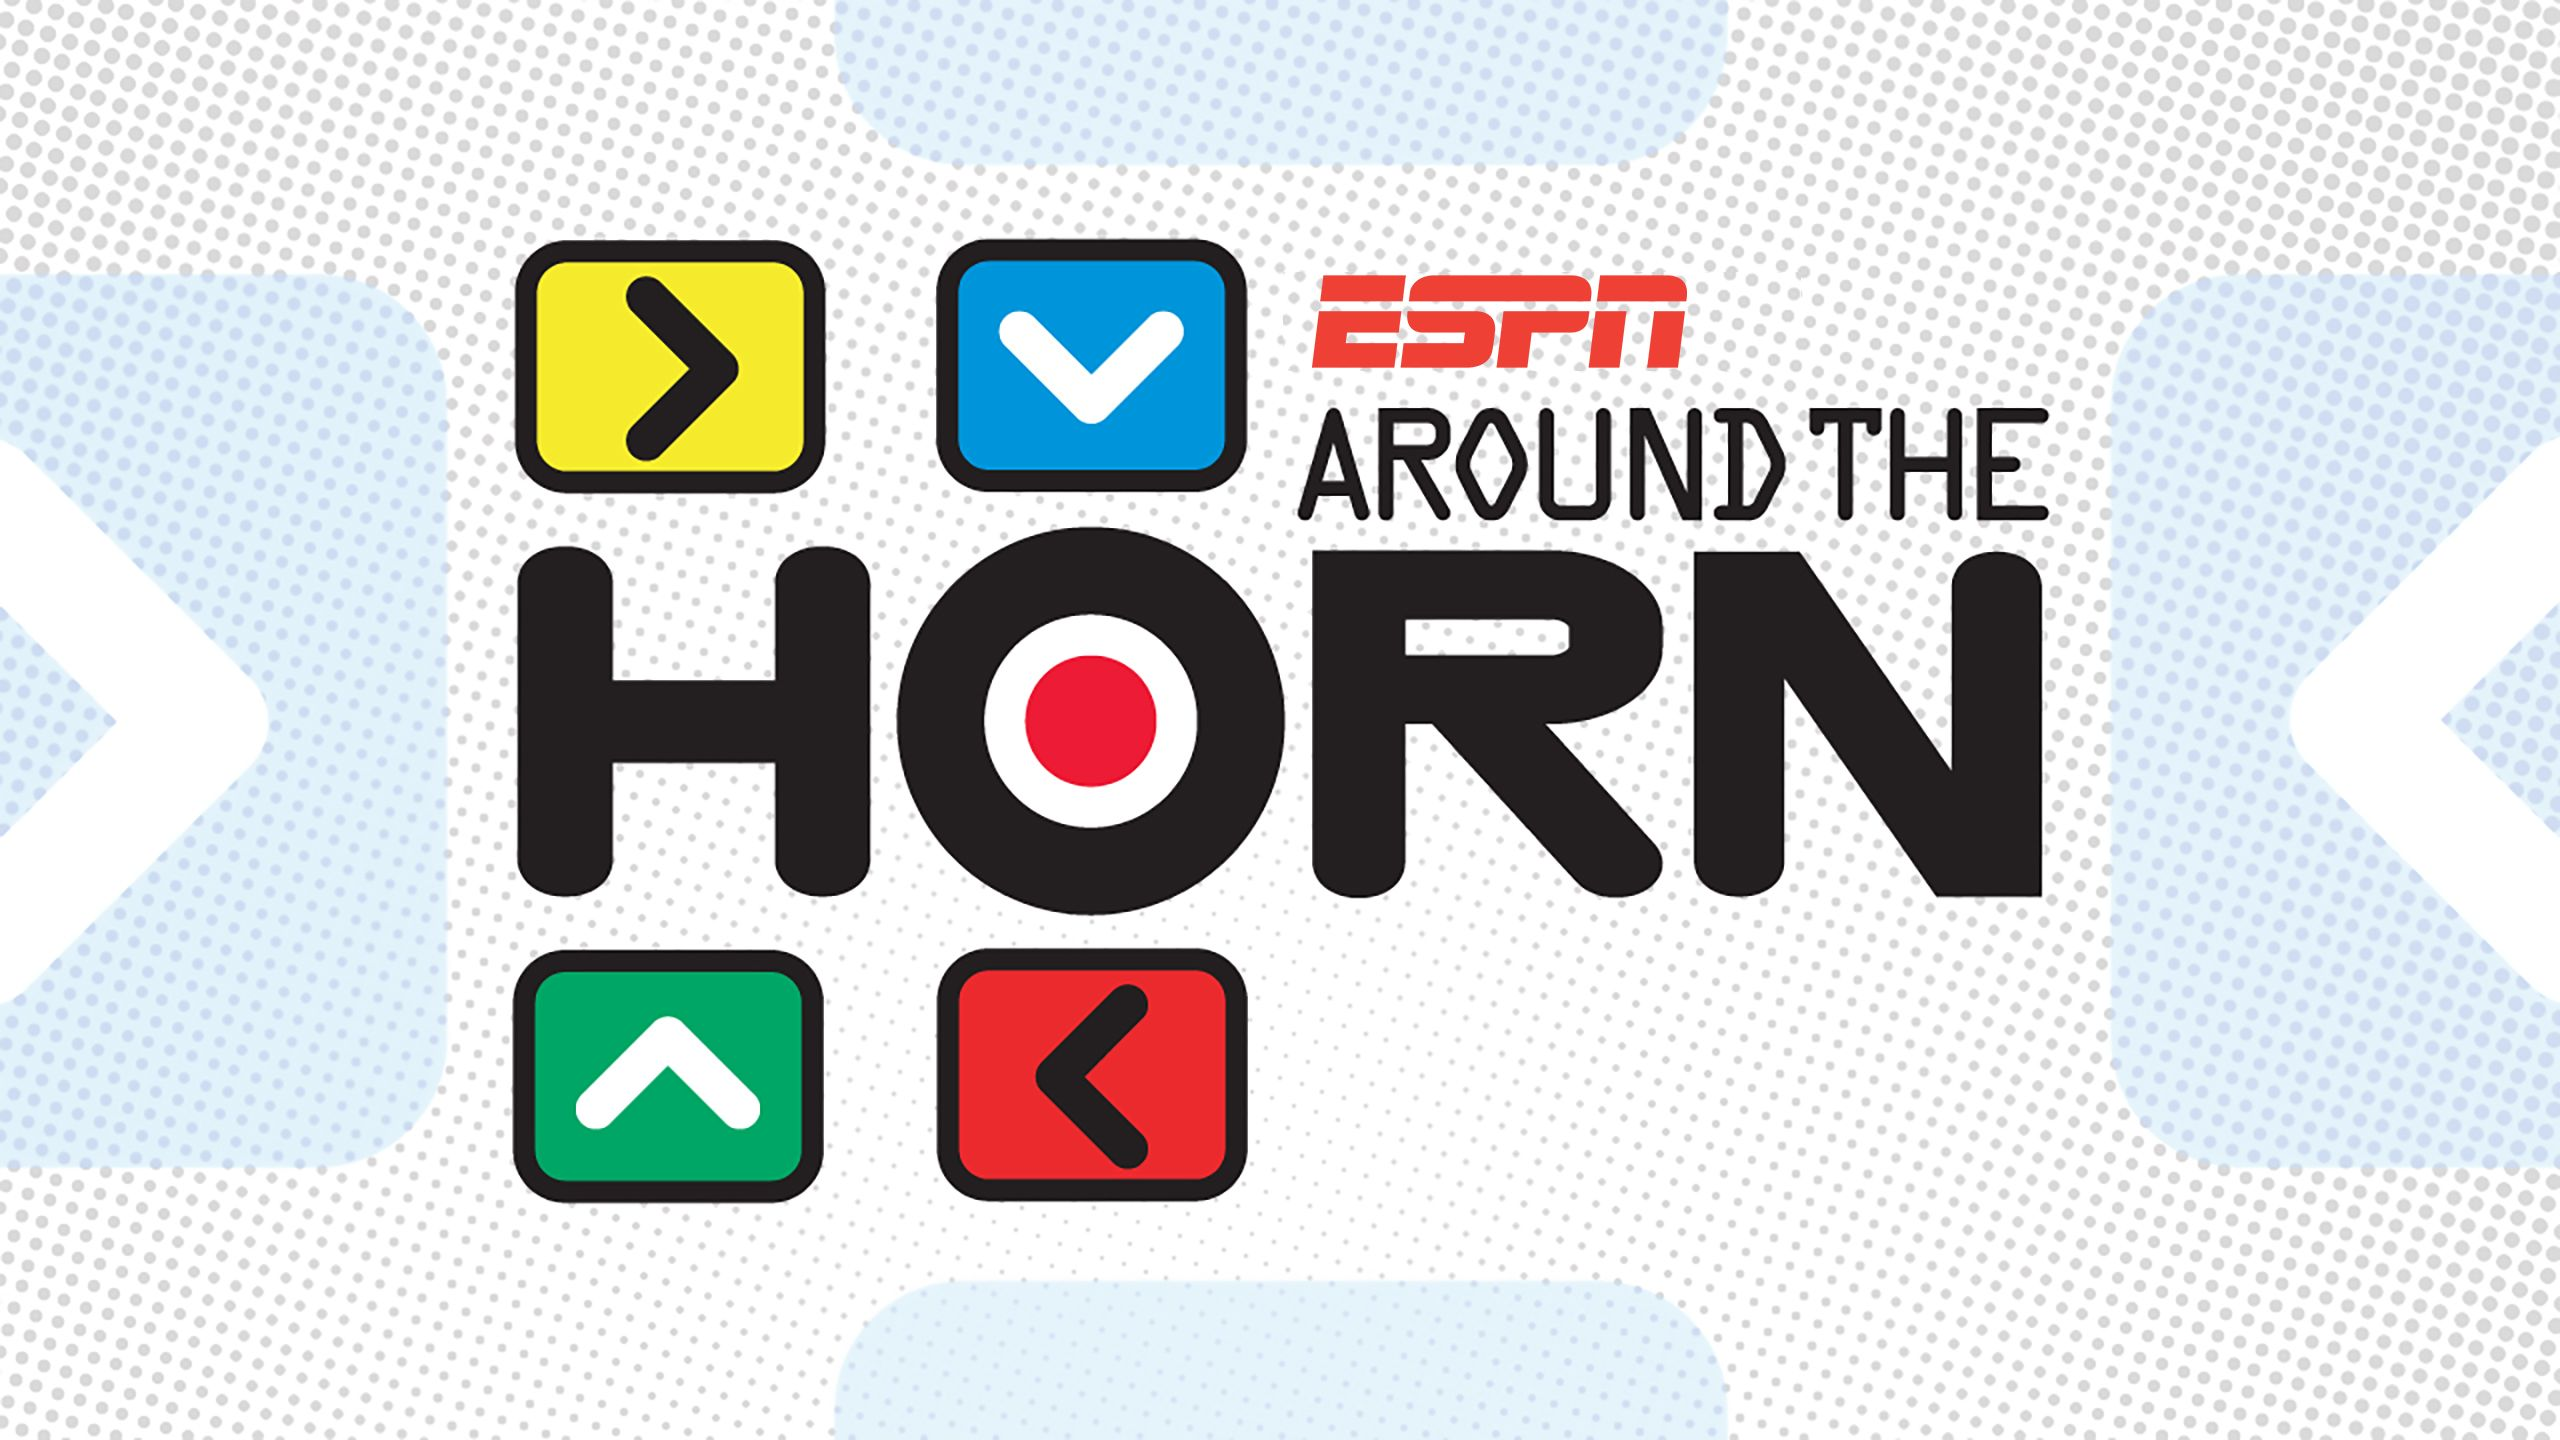 Thu, 7/19 - Around The Horn